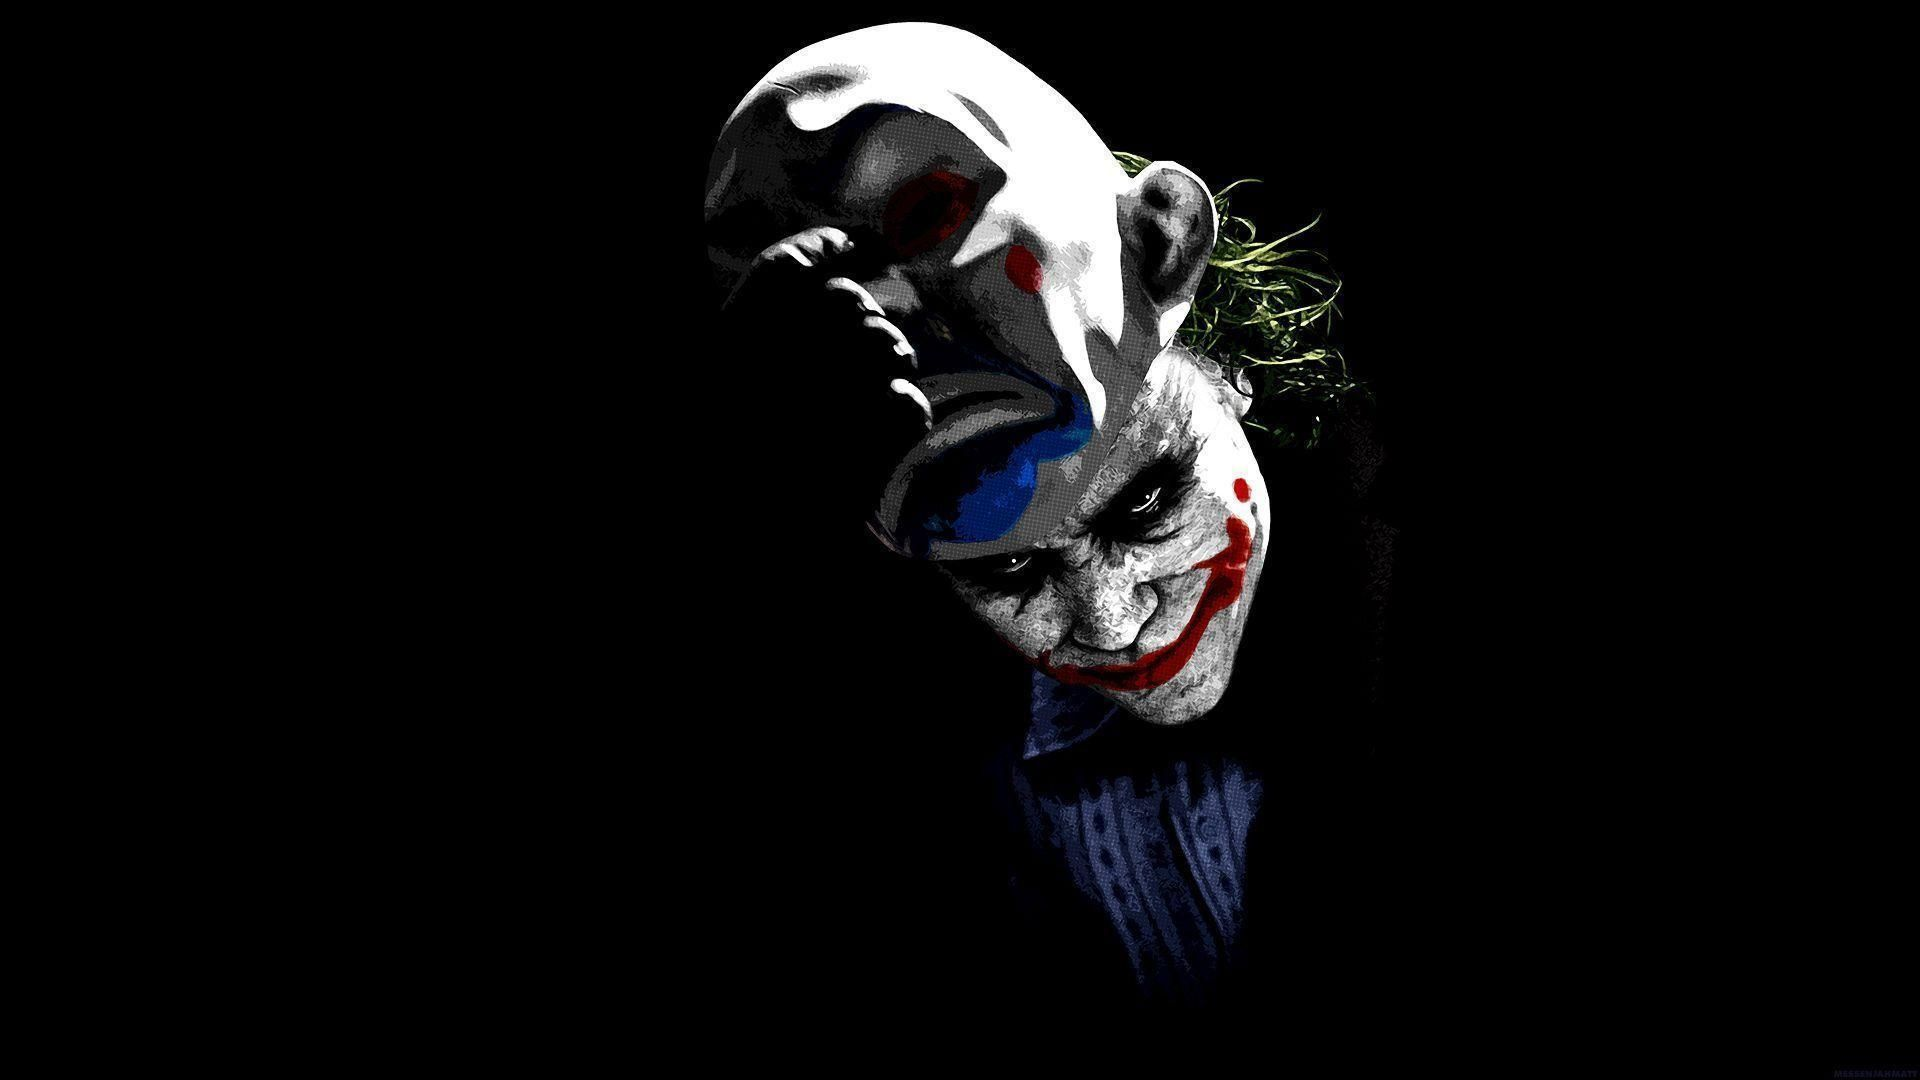 The Joker 1920x1080 Joker Wallpapers Pc Desktop Wallpaper